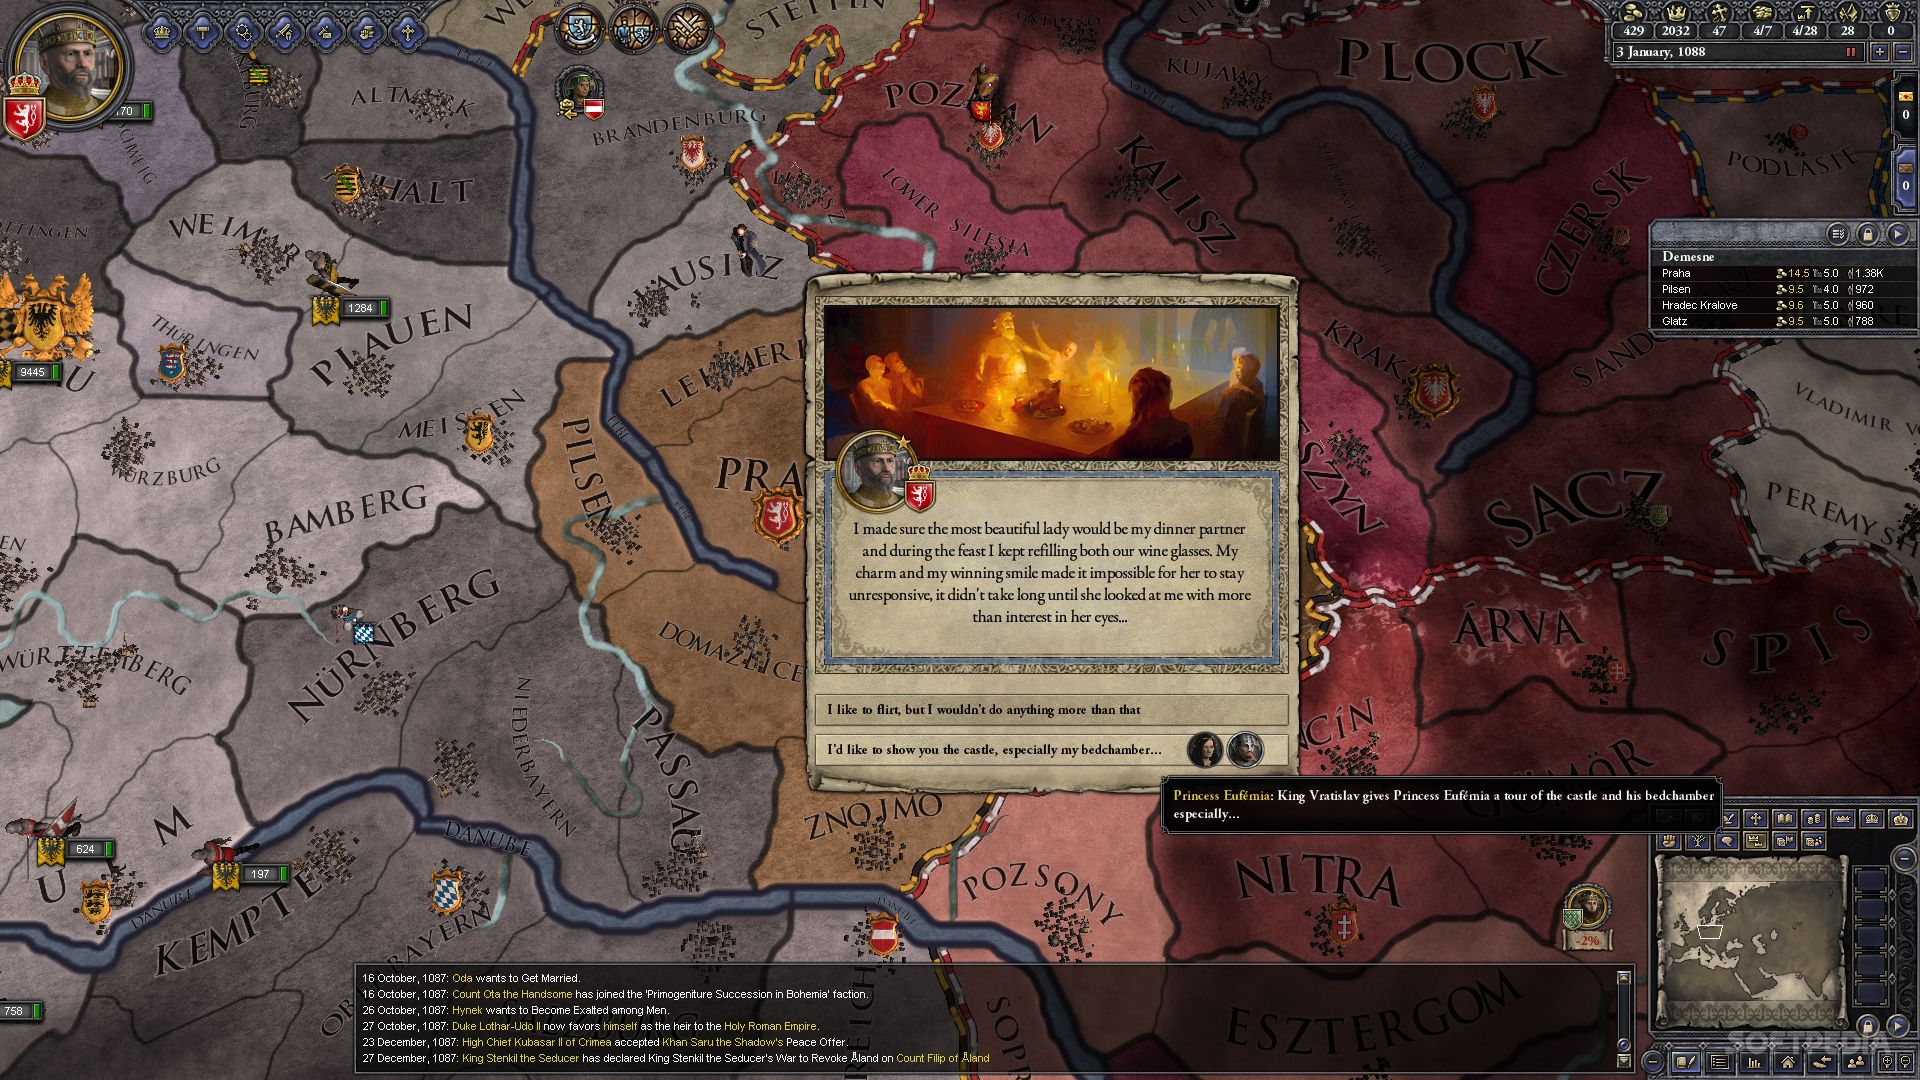 Crusader Kings II Patch 2 3 1 Is Live, Seduction Focus Problems Fixed